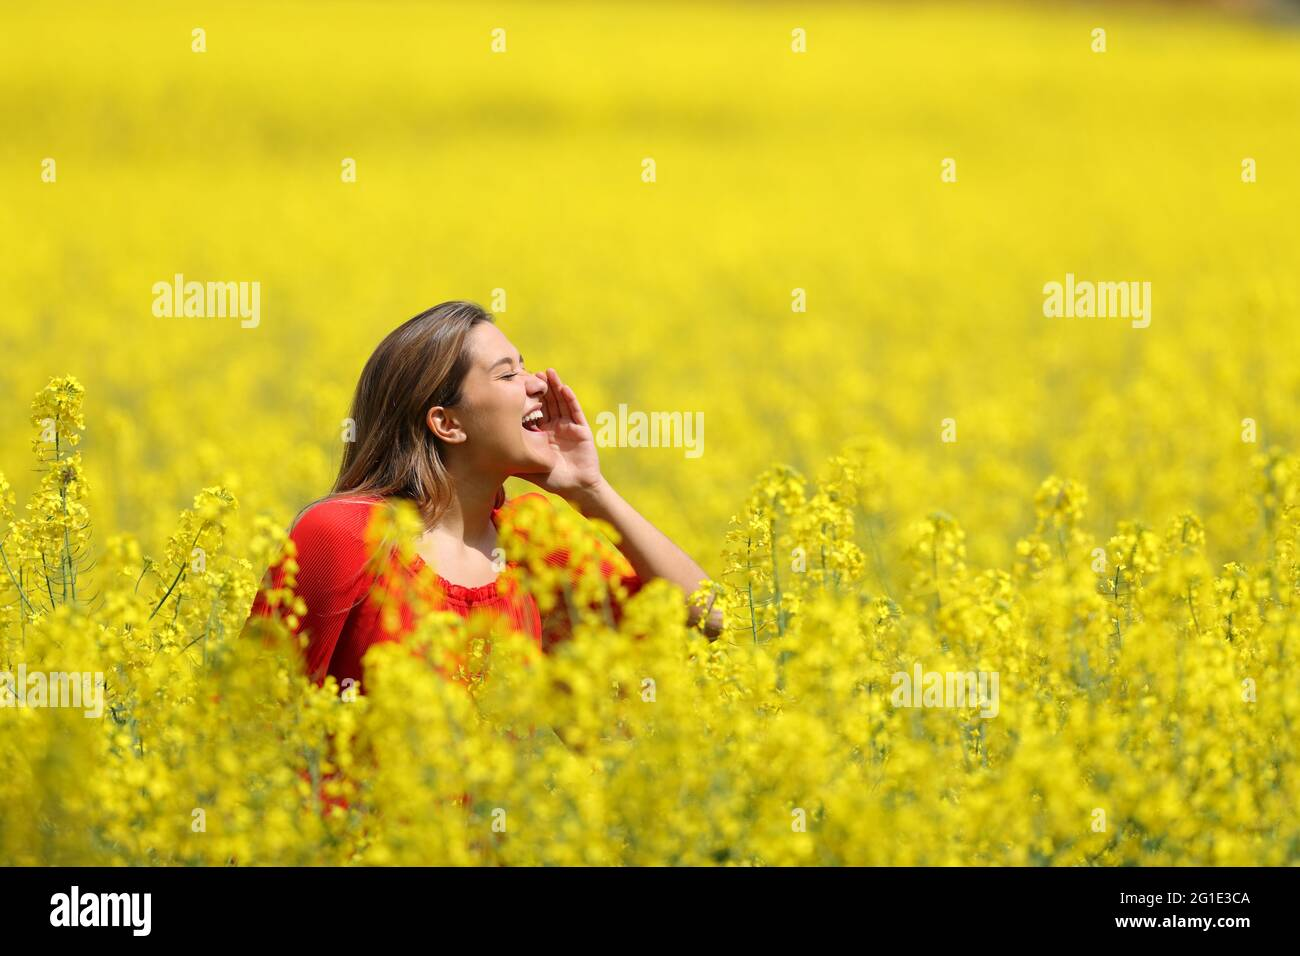 Side view portrait of a happy woman in red screaming in a yellow field in spring season Stock Photo